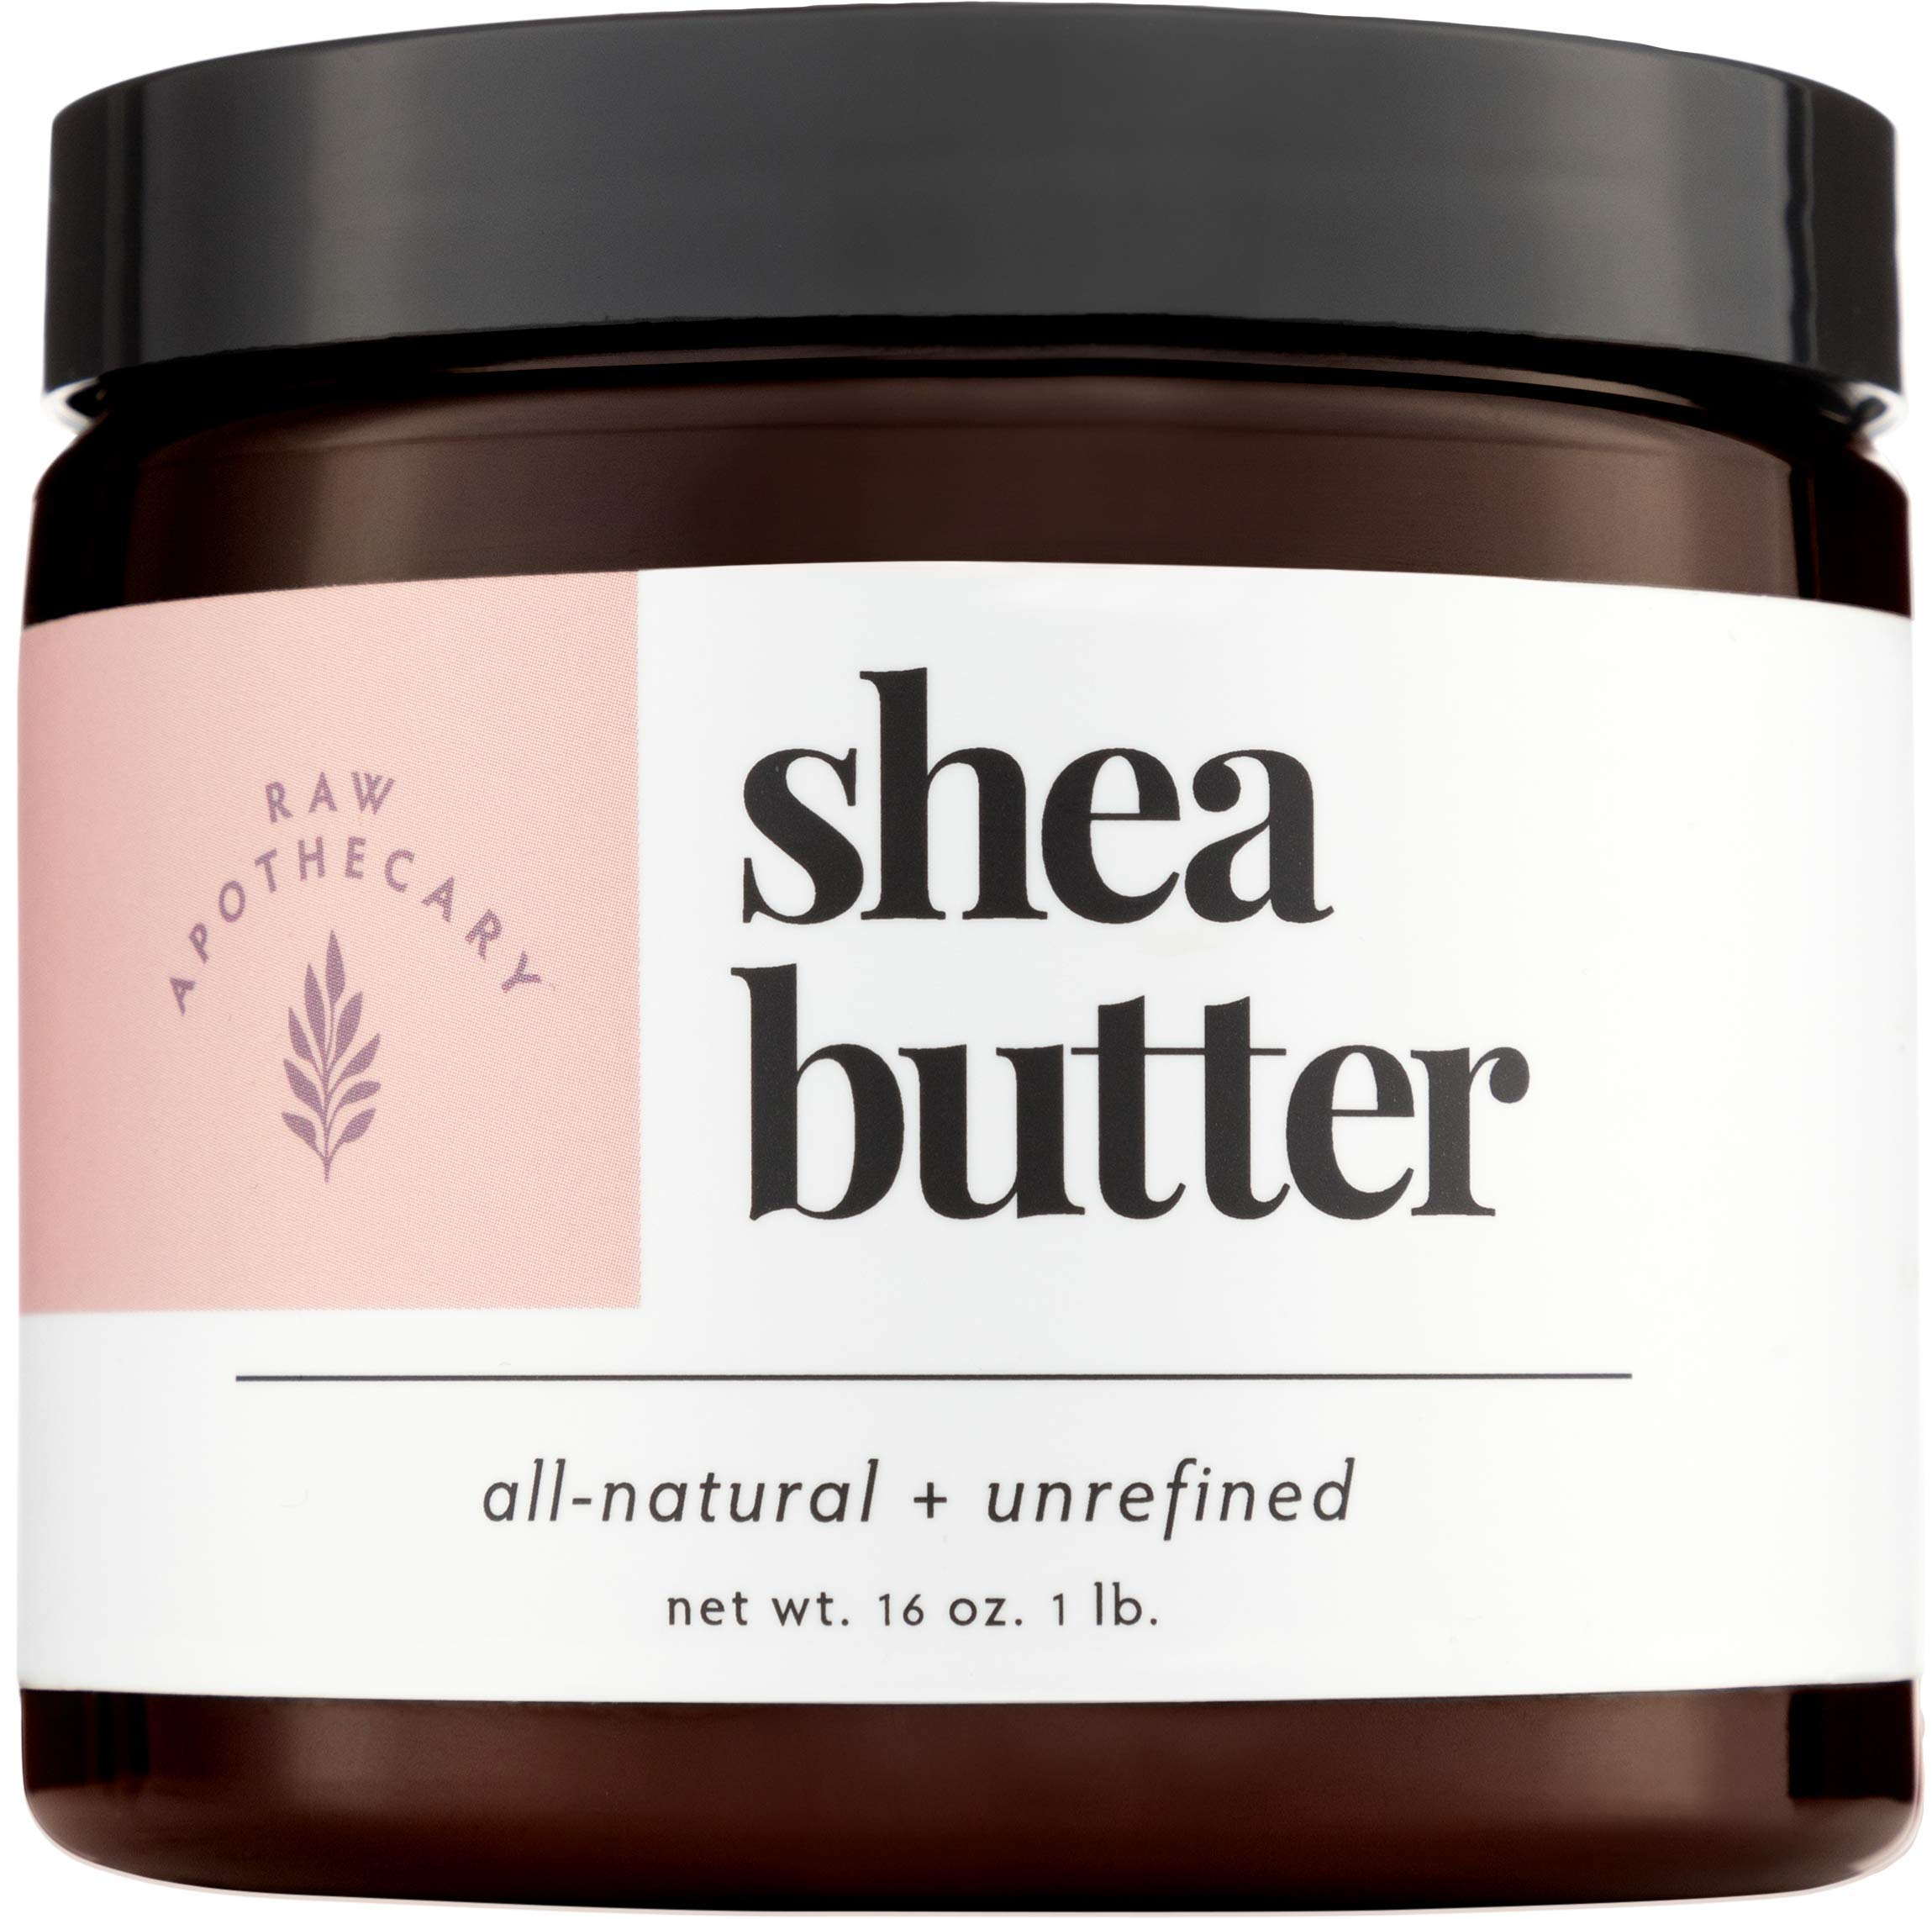 Ivory Shea Butter, 100% All Natural by Raw Apothecary- Top-Grade, Unrefined and Additive Free Ivory Butter (1 Pound) by Raw Apothecary